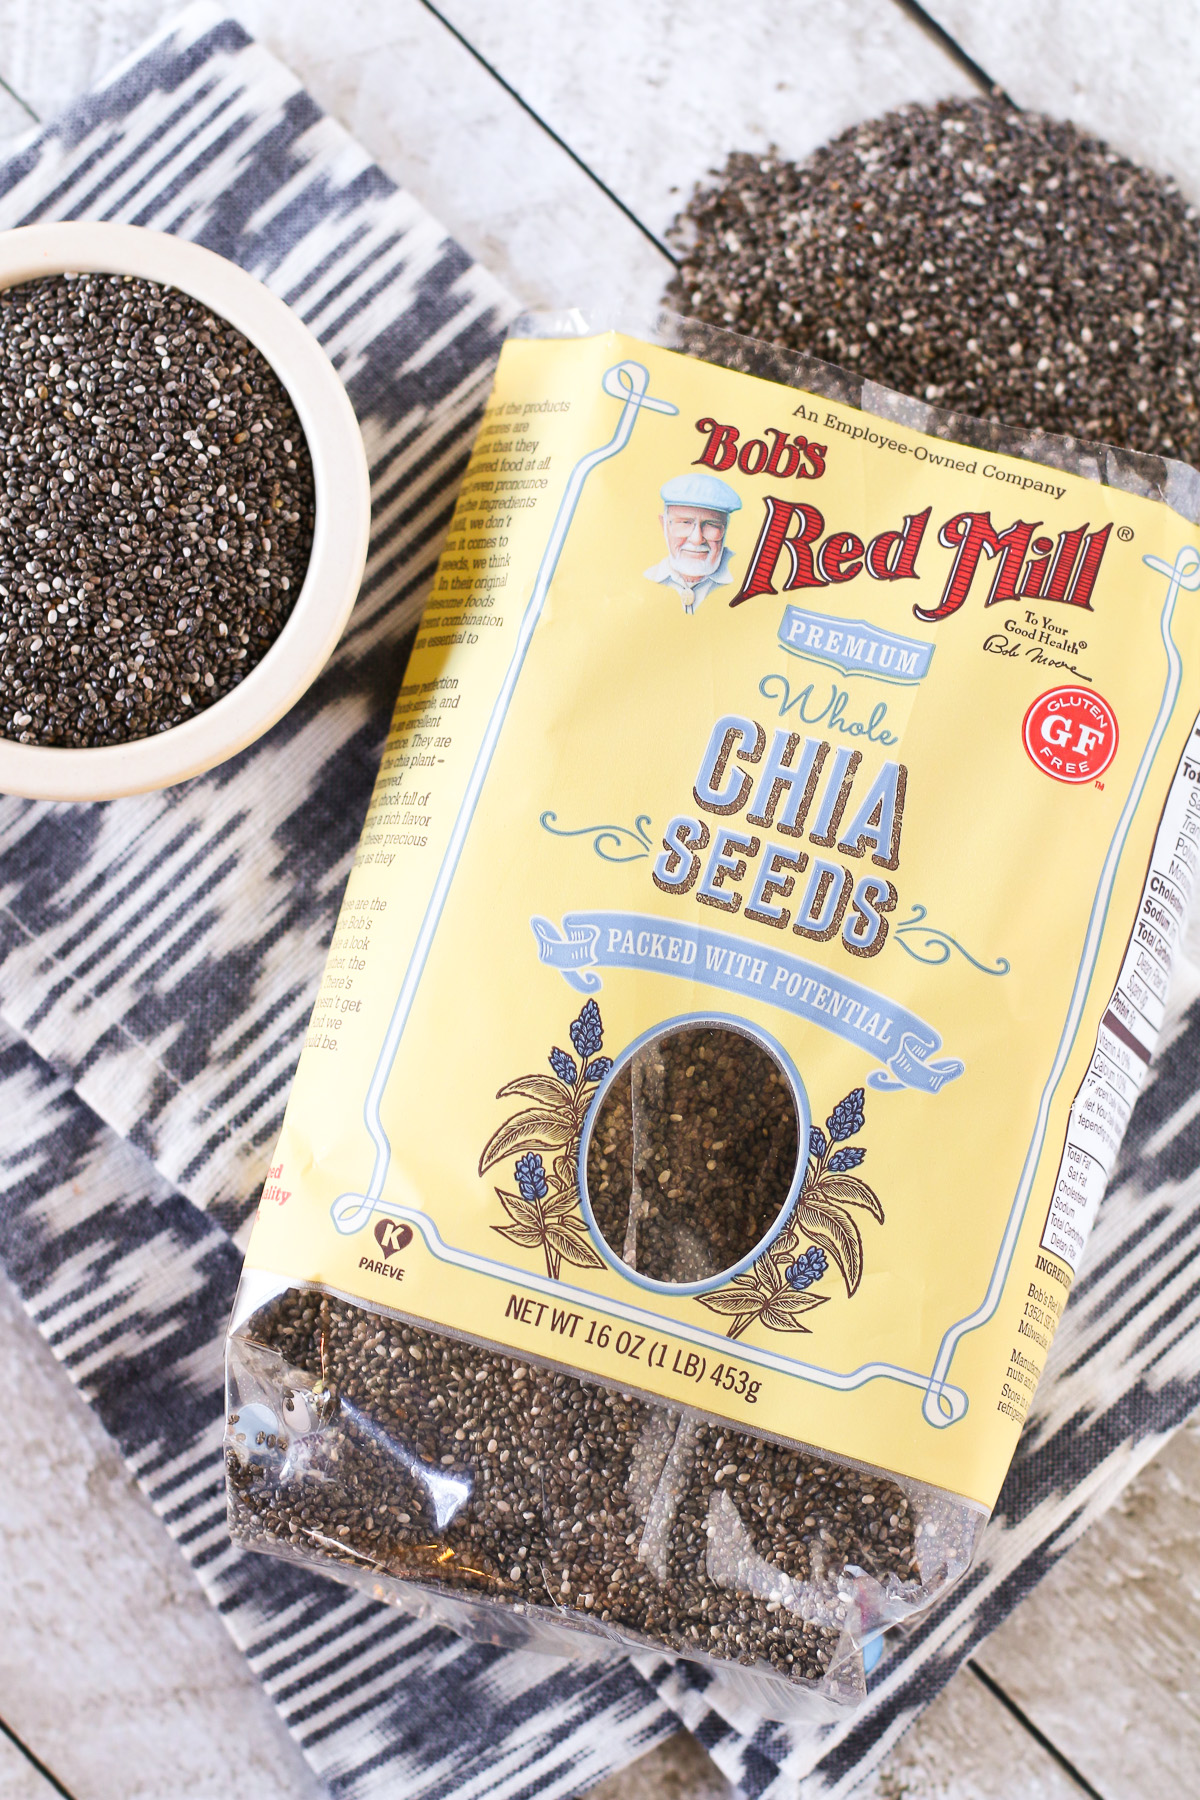 Bob's Red Mill Chia Seeds. These little super-seeds are packed with antioxidants, omega-3's and fiber. Great for making chia seed pudding!